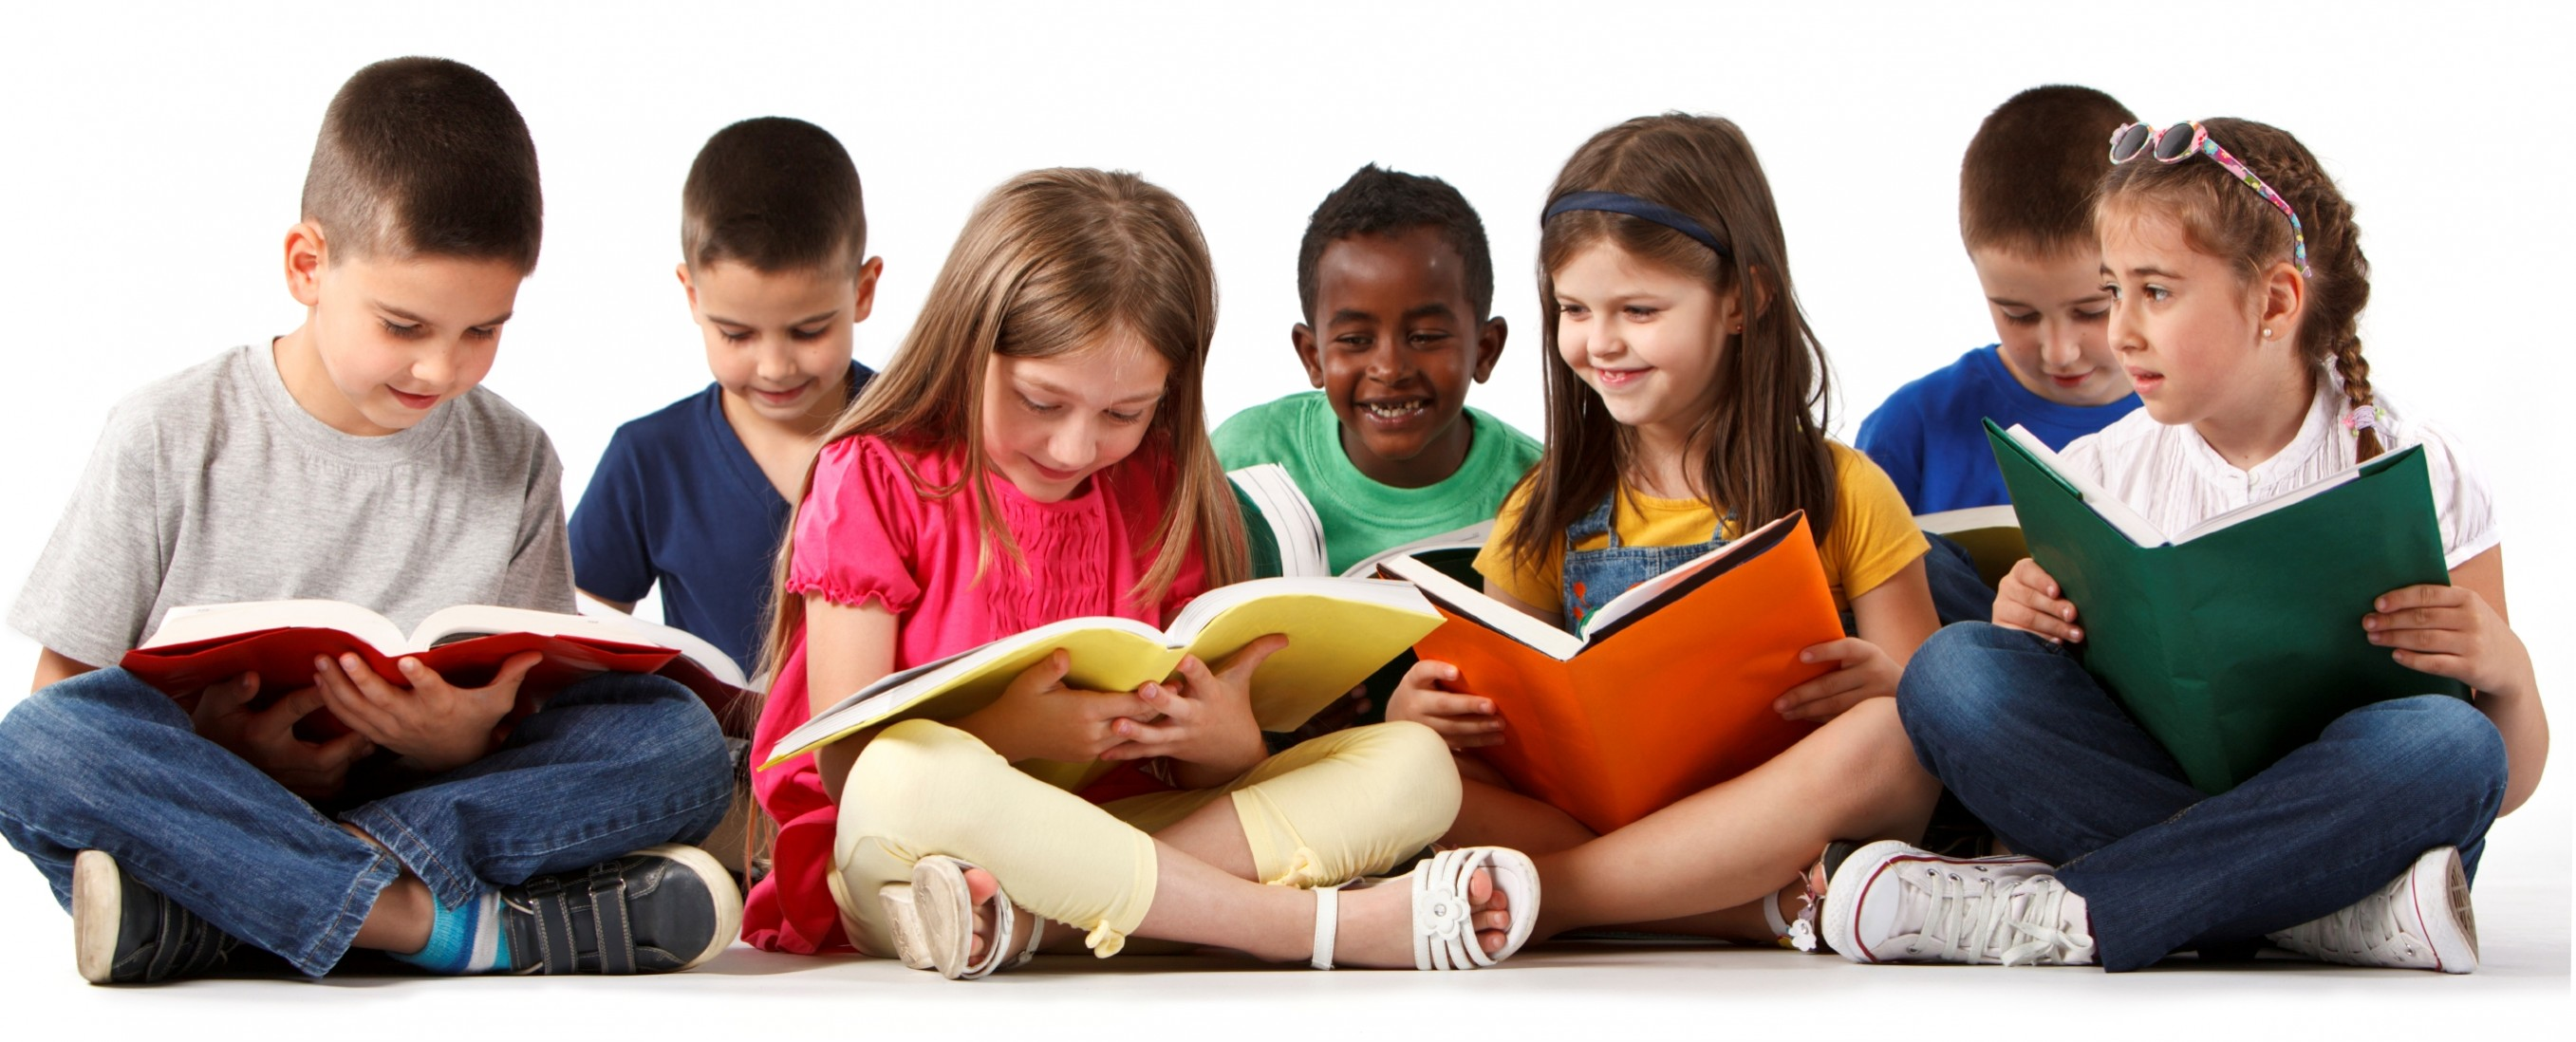 png-hd-of-kids-reading-reading-comprehension-for-kids-png-kids-reading-2714